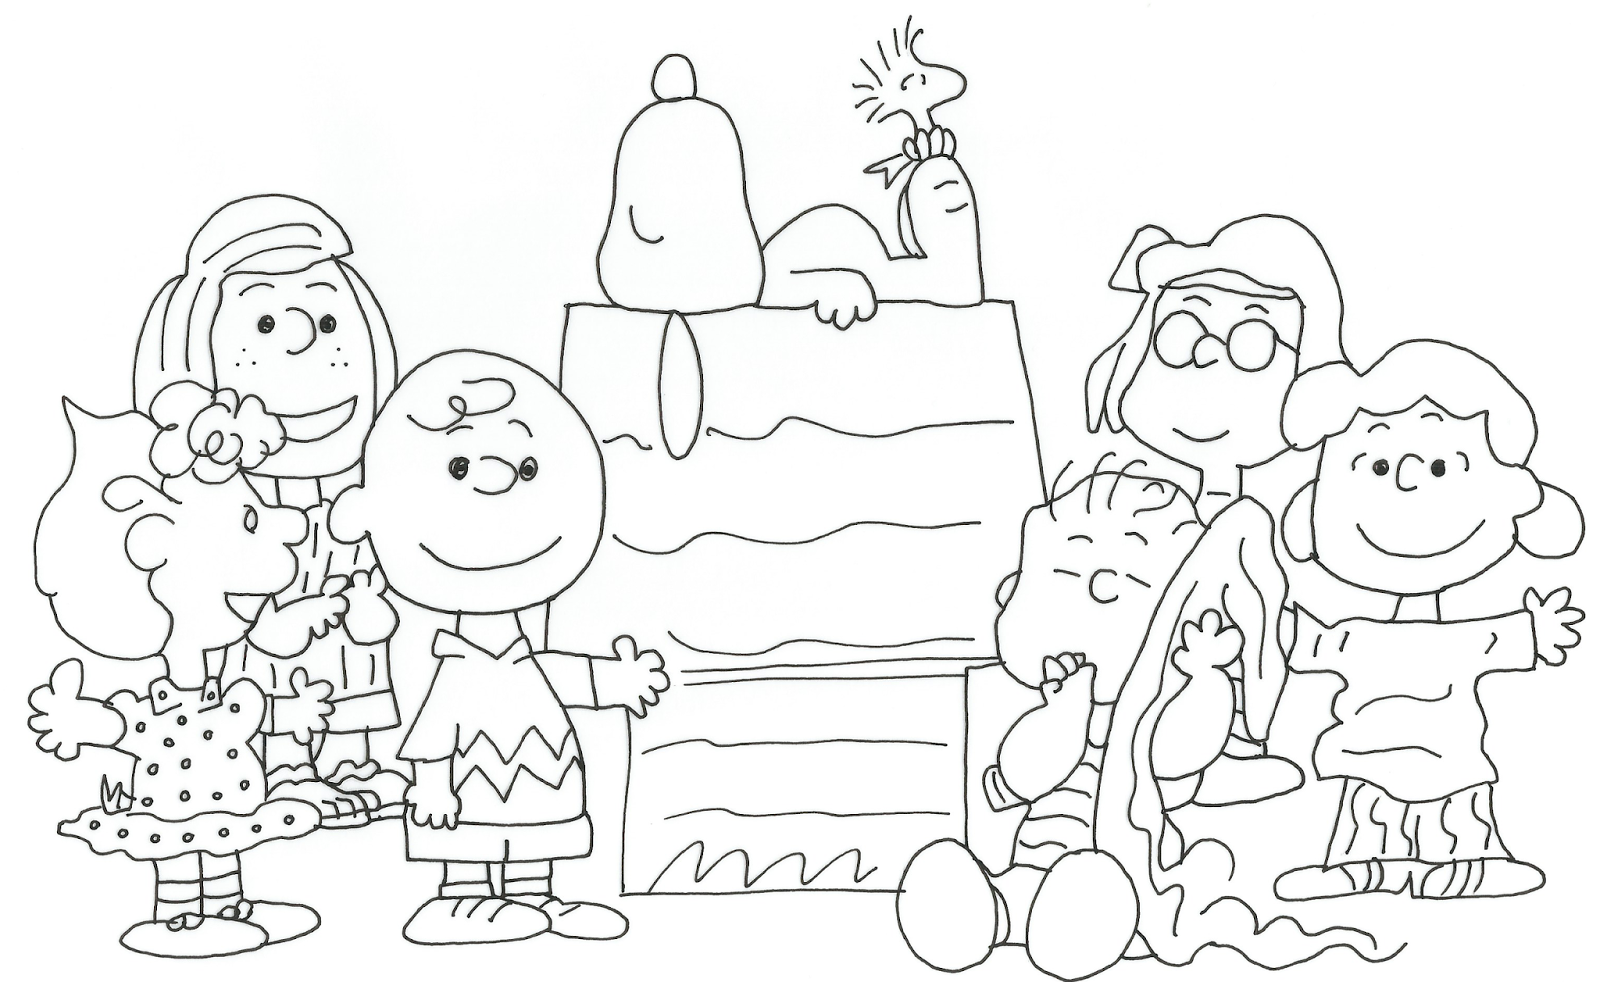 Free Charlie Brown Snoopy And Peanuts Coloring Pages Snoopy Printable Coloring Pages